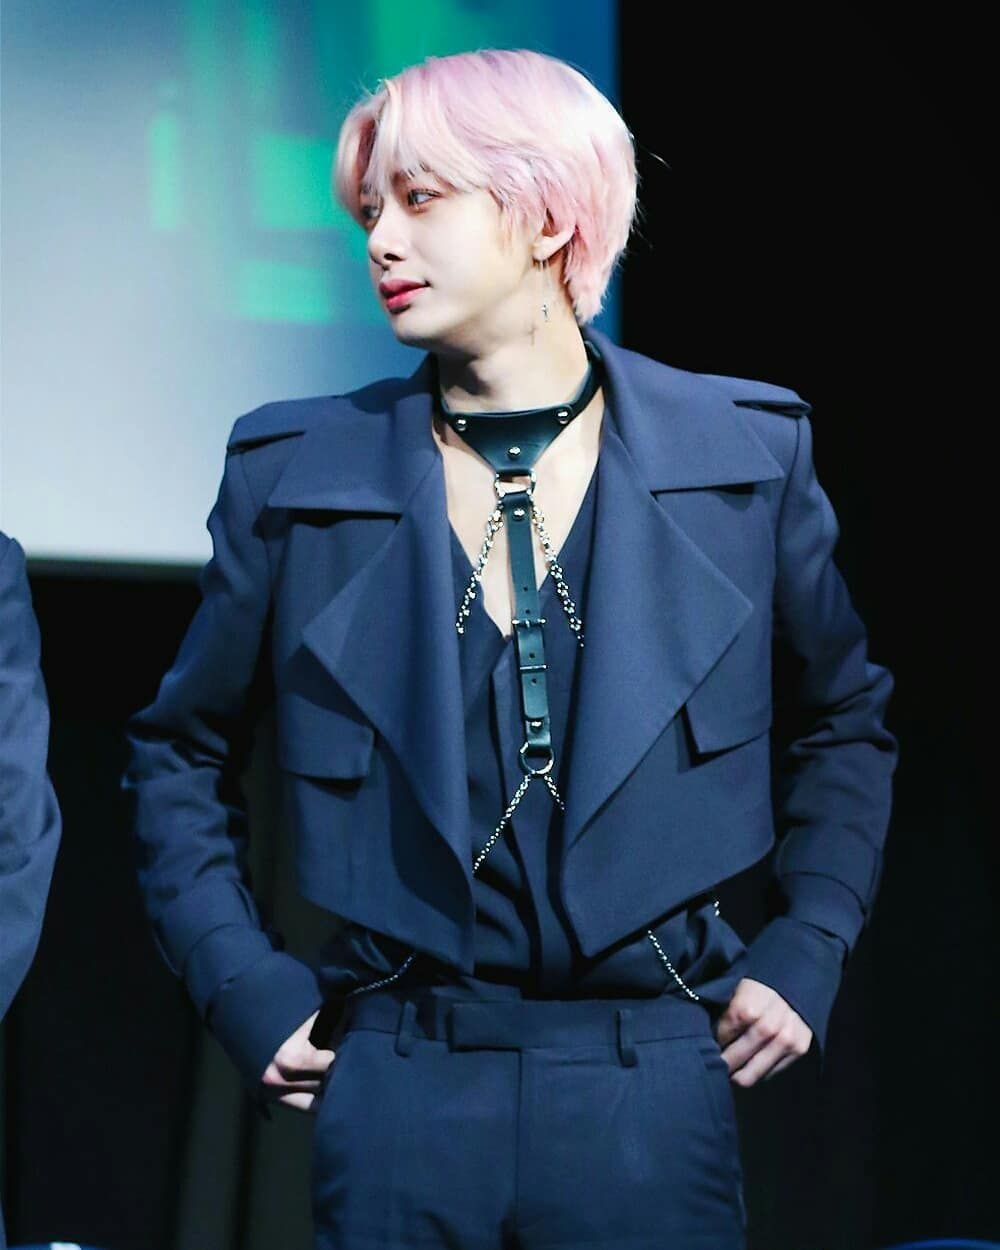 From Harness To Body Chain To Total Upgrade Istg How Many More Mx Stylist Have In Their Stash Im Curious Monsta X Hyungwon Monsta X Hyungwon